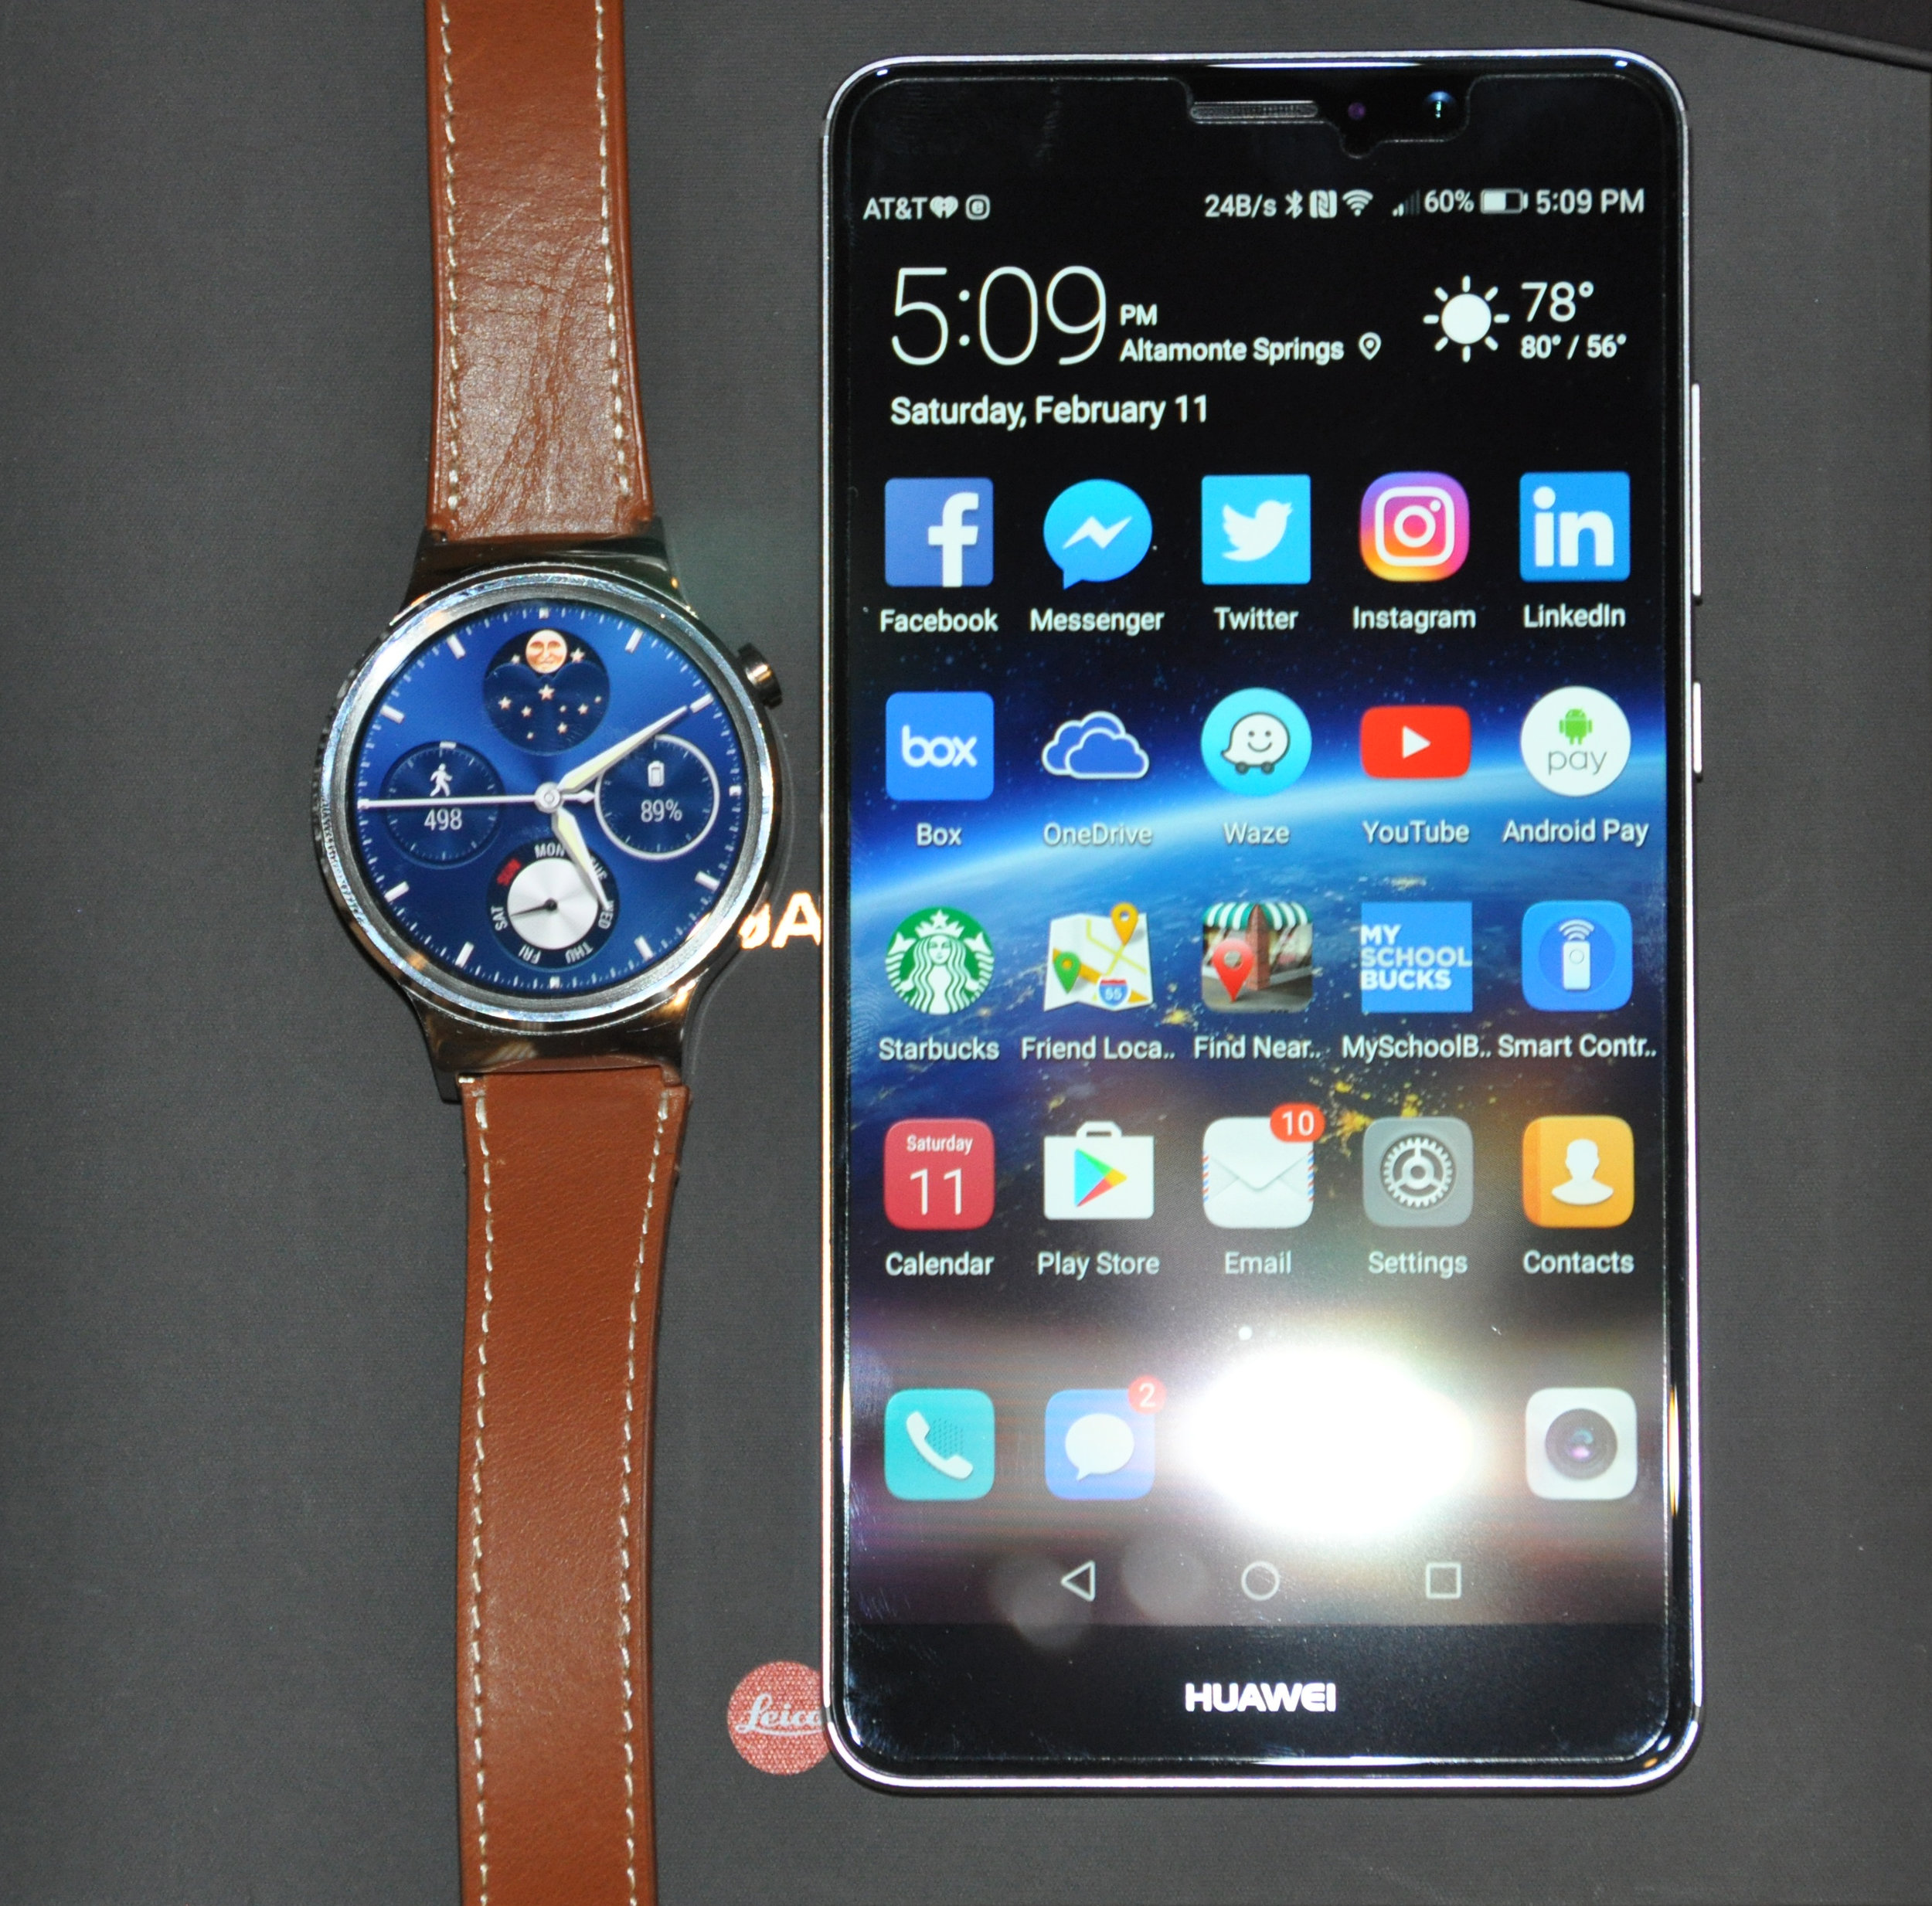 Huawei Mate 9 and Huawei Watch